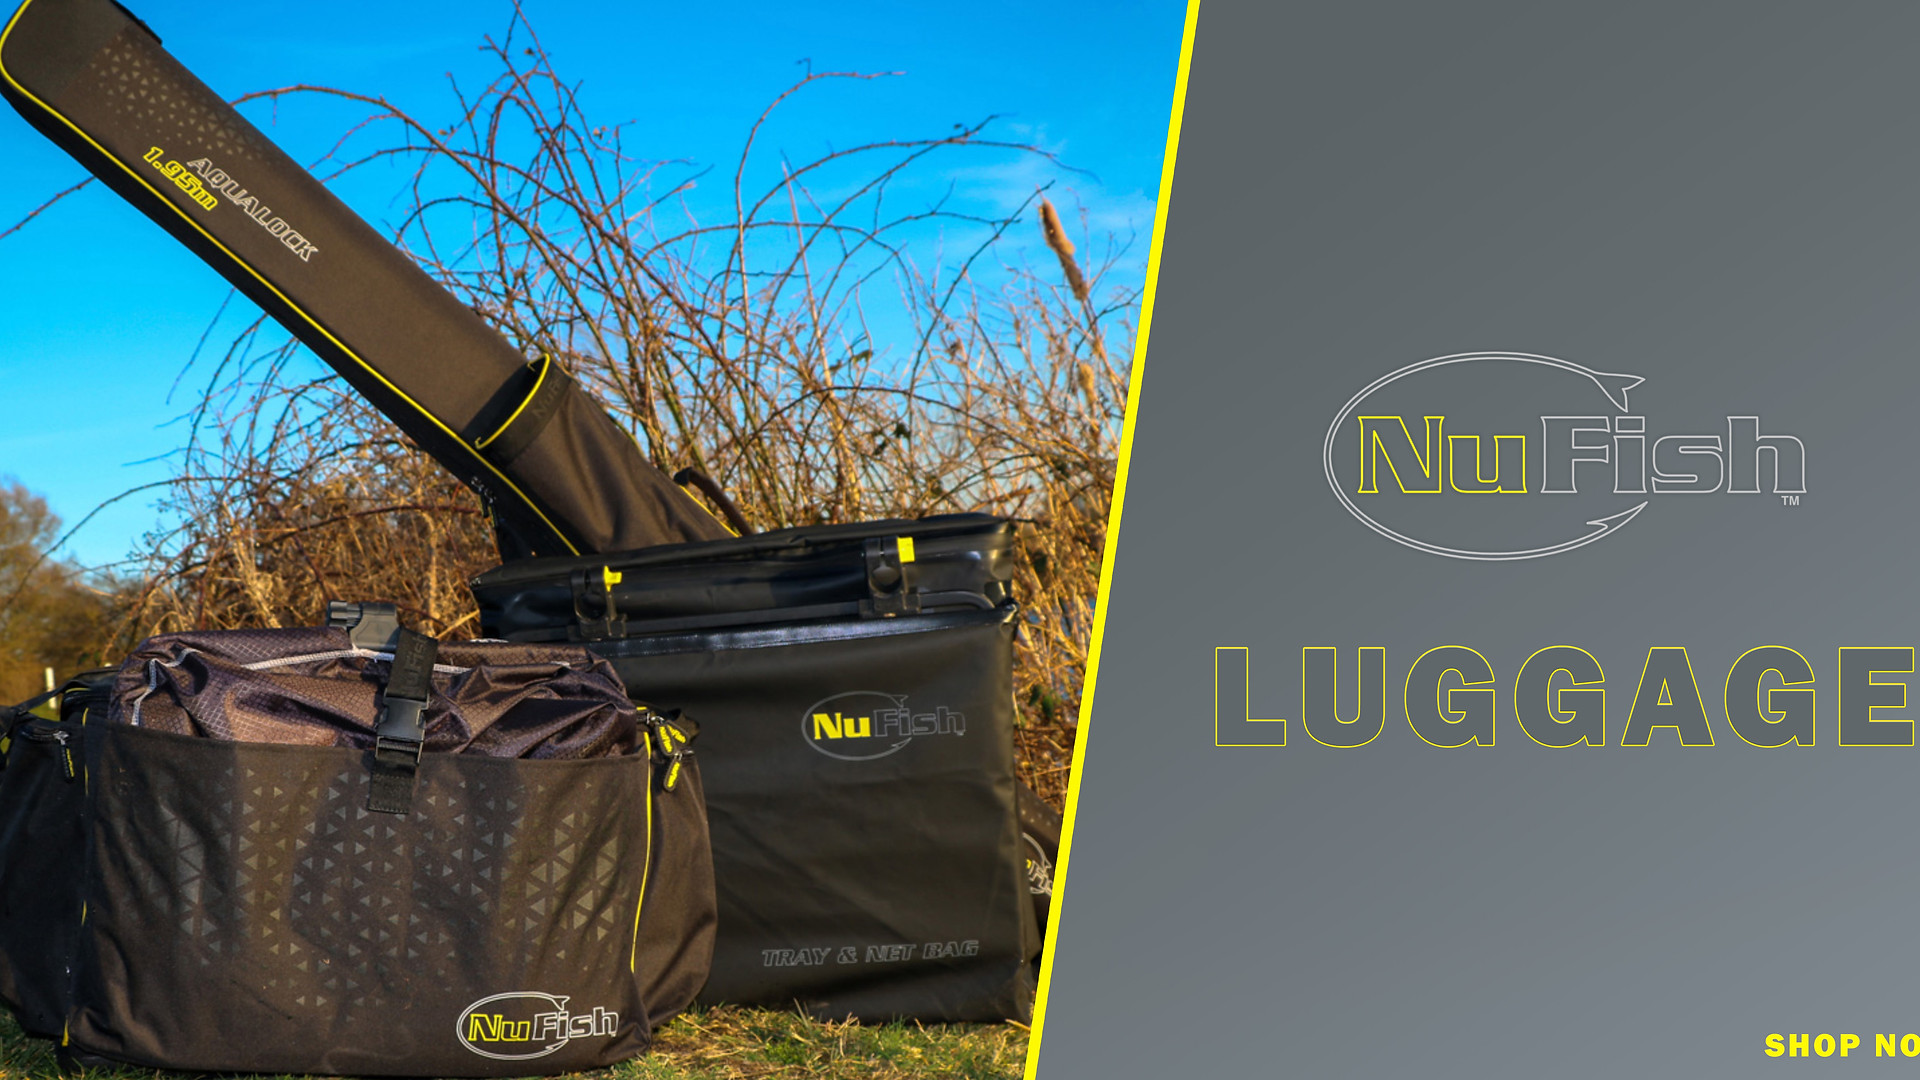 NuFish Luggage